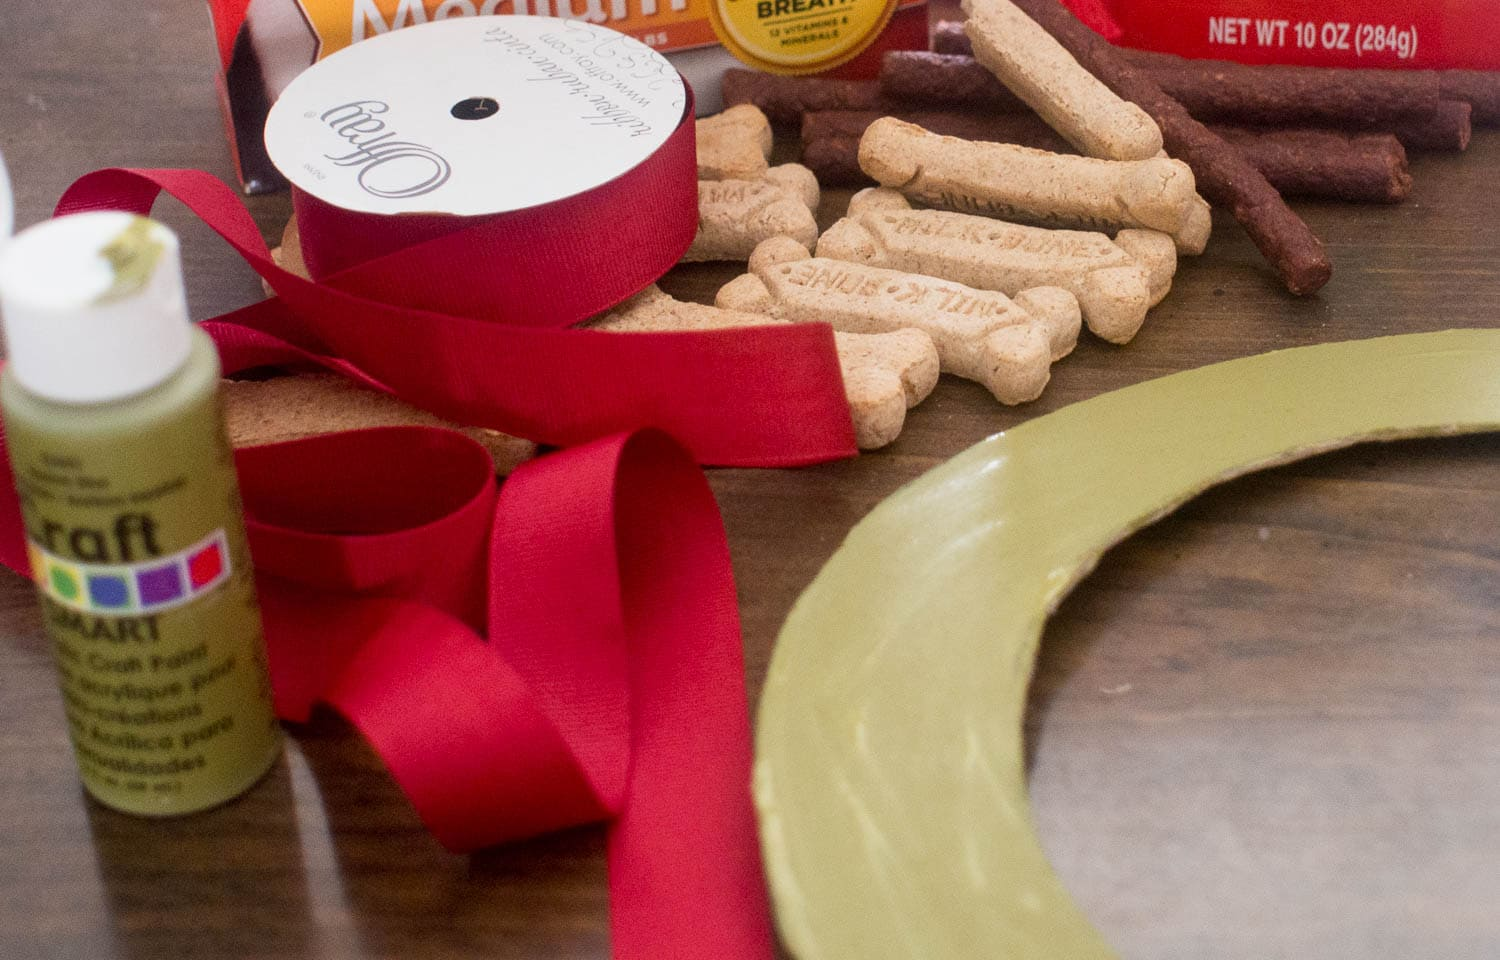 Supplies for Dog Treat Wreath